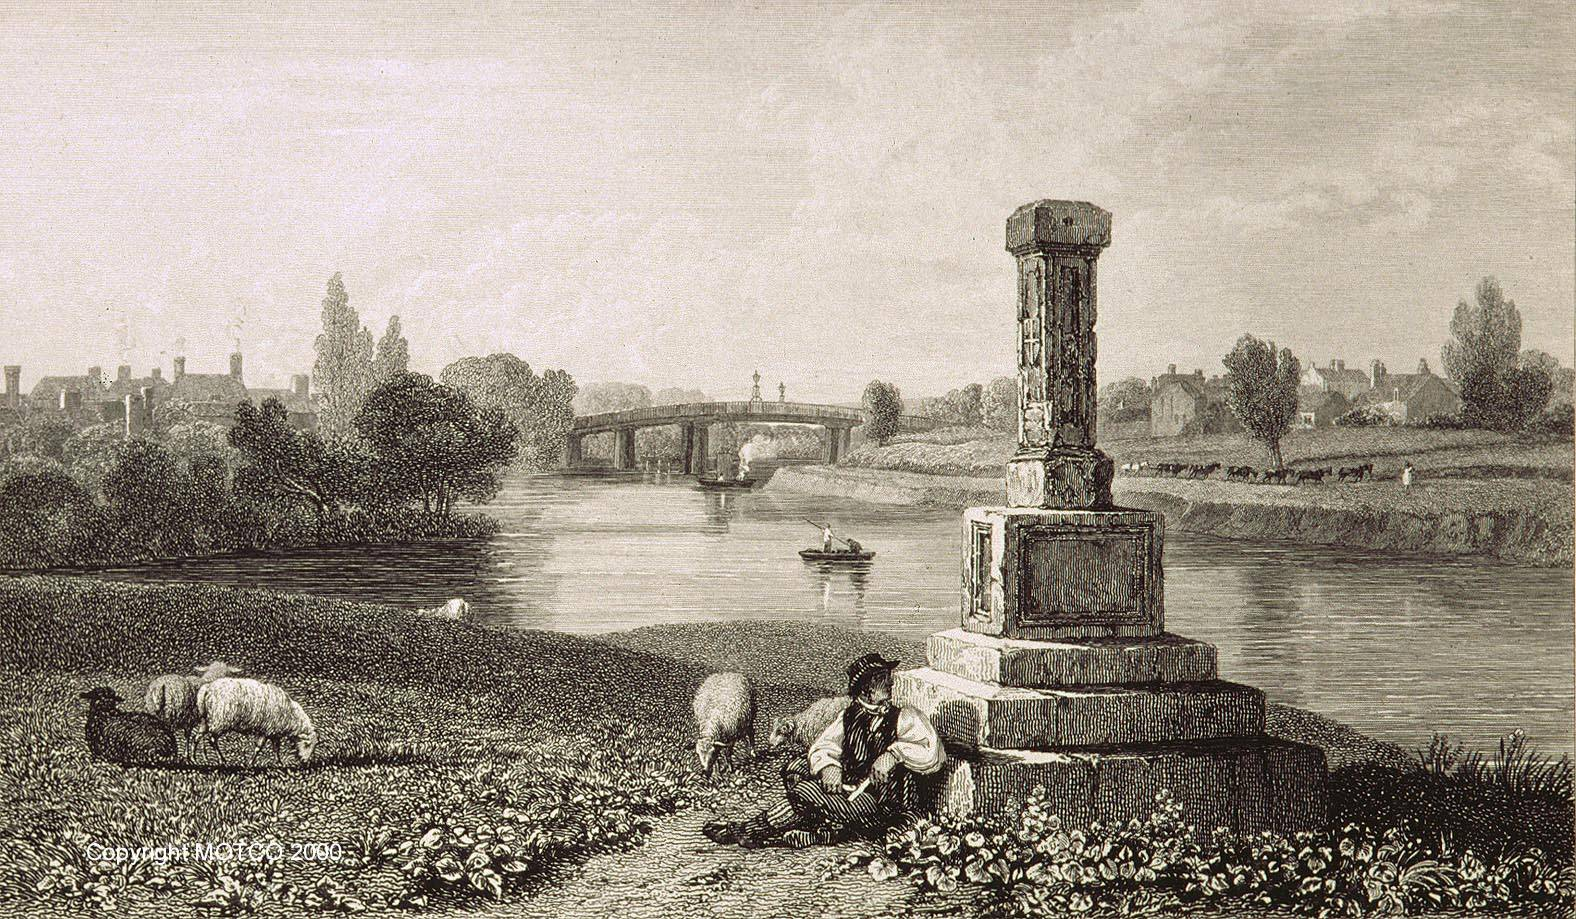 London Stone Staines 1821